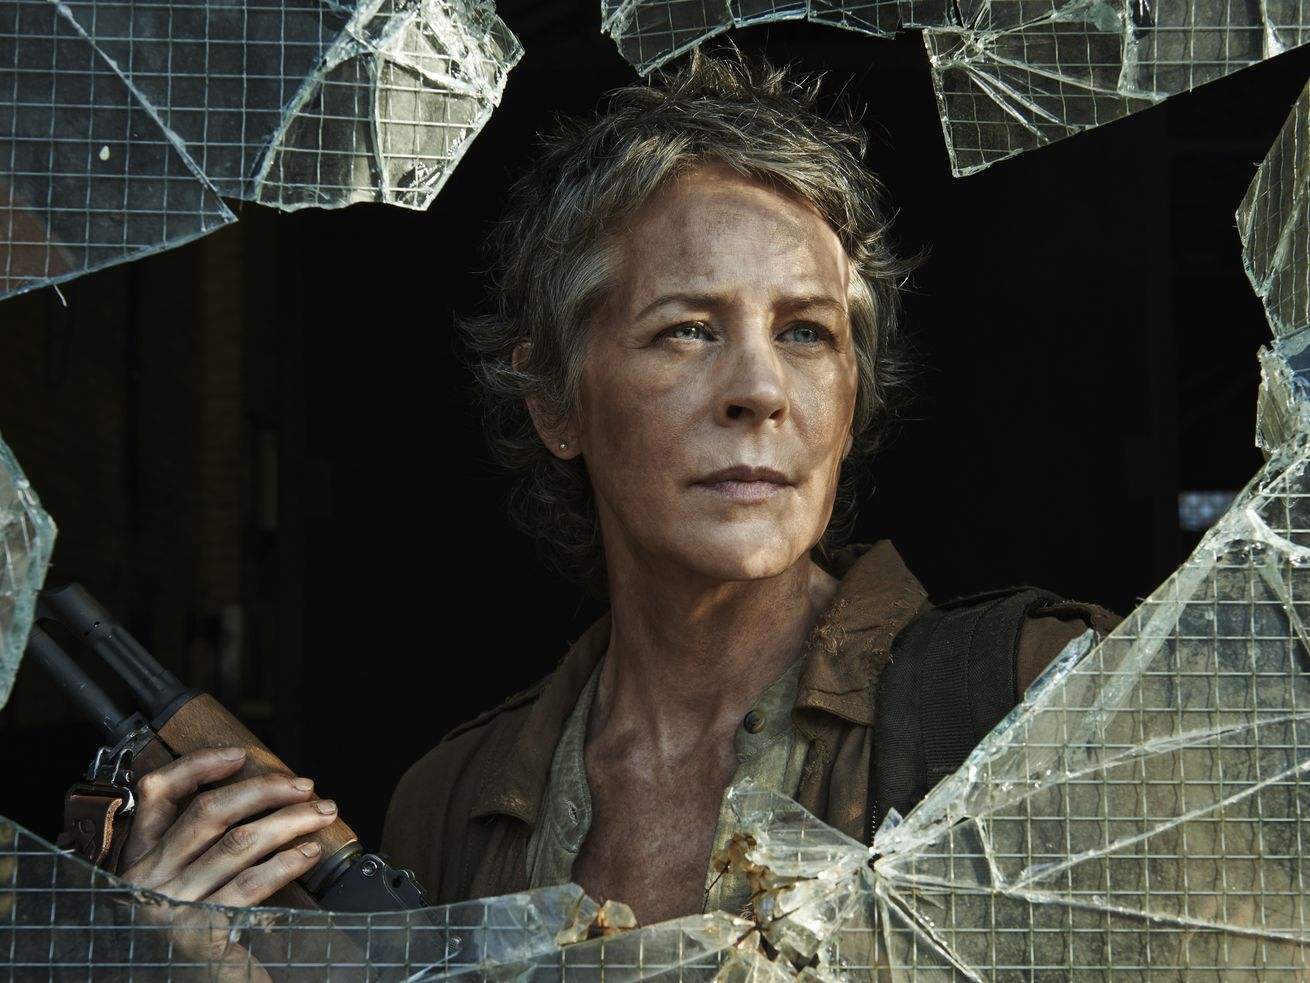 """Two of the most popular """"Dead""""characters, Daryl Dixon (Norman Reedus) and Carol Peletier (Melissa McBride, pictured), will starin a spinoff series due in 2023."""